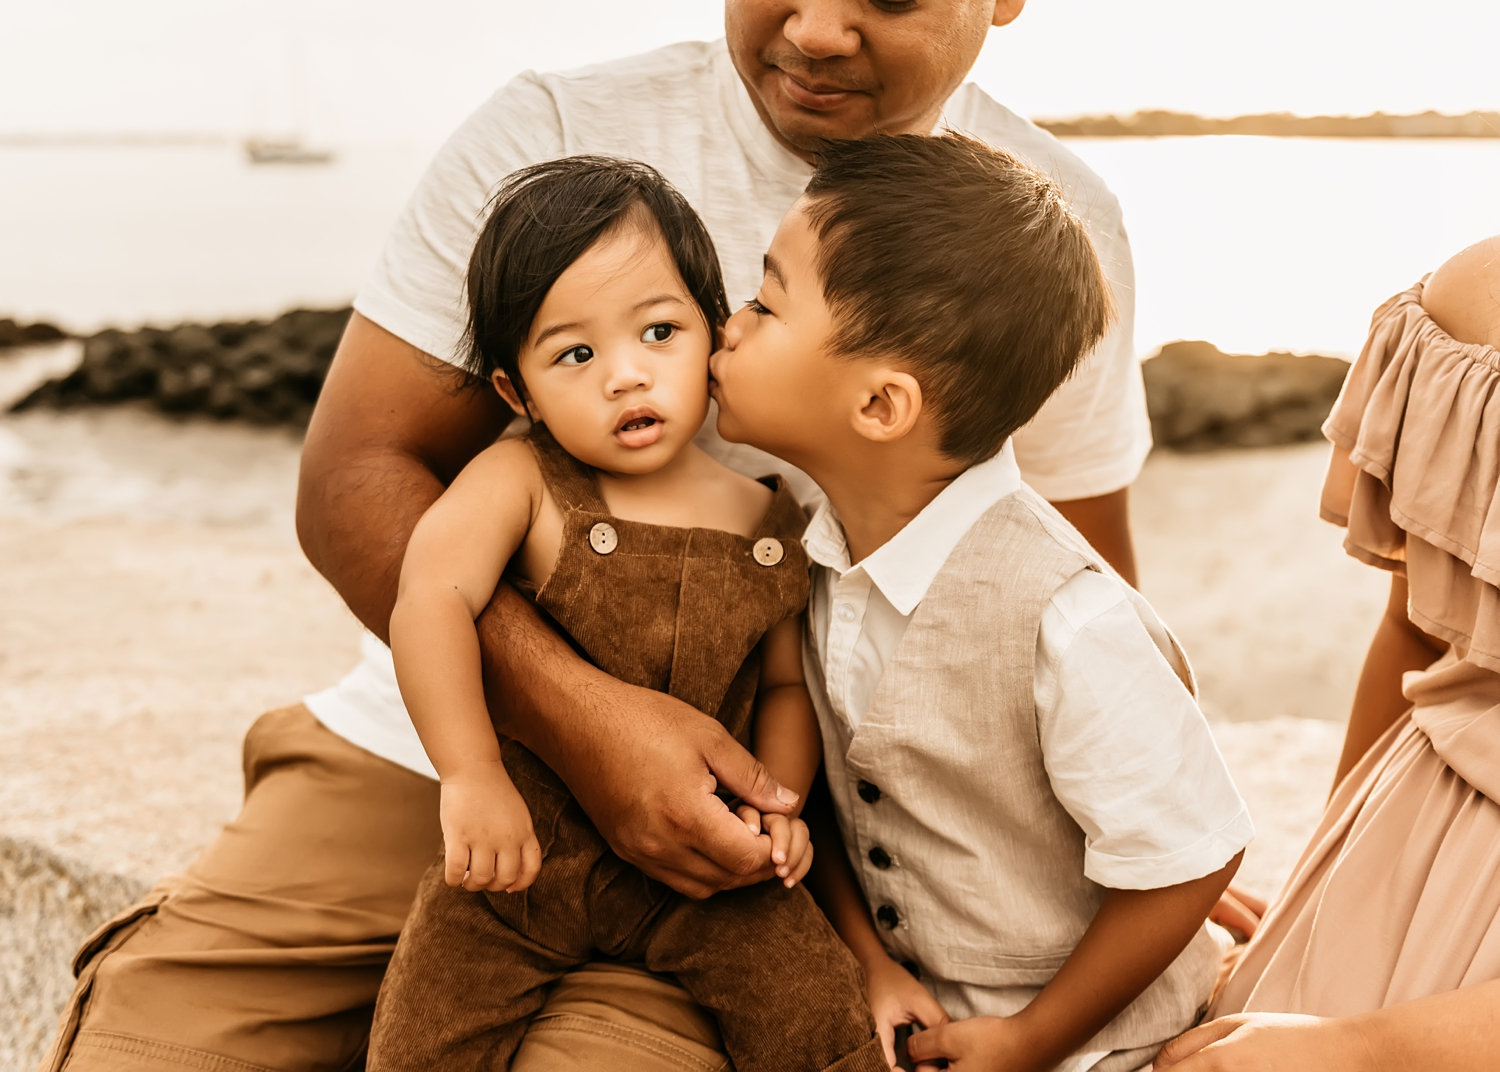 father holding his 2 young boys, one brother is kissing the other brother's cheek, mom's dress is peeking from the right side of the image